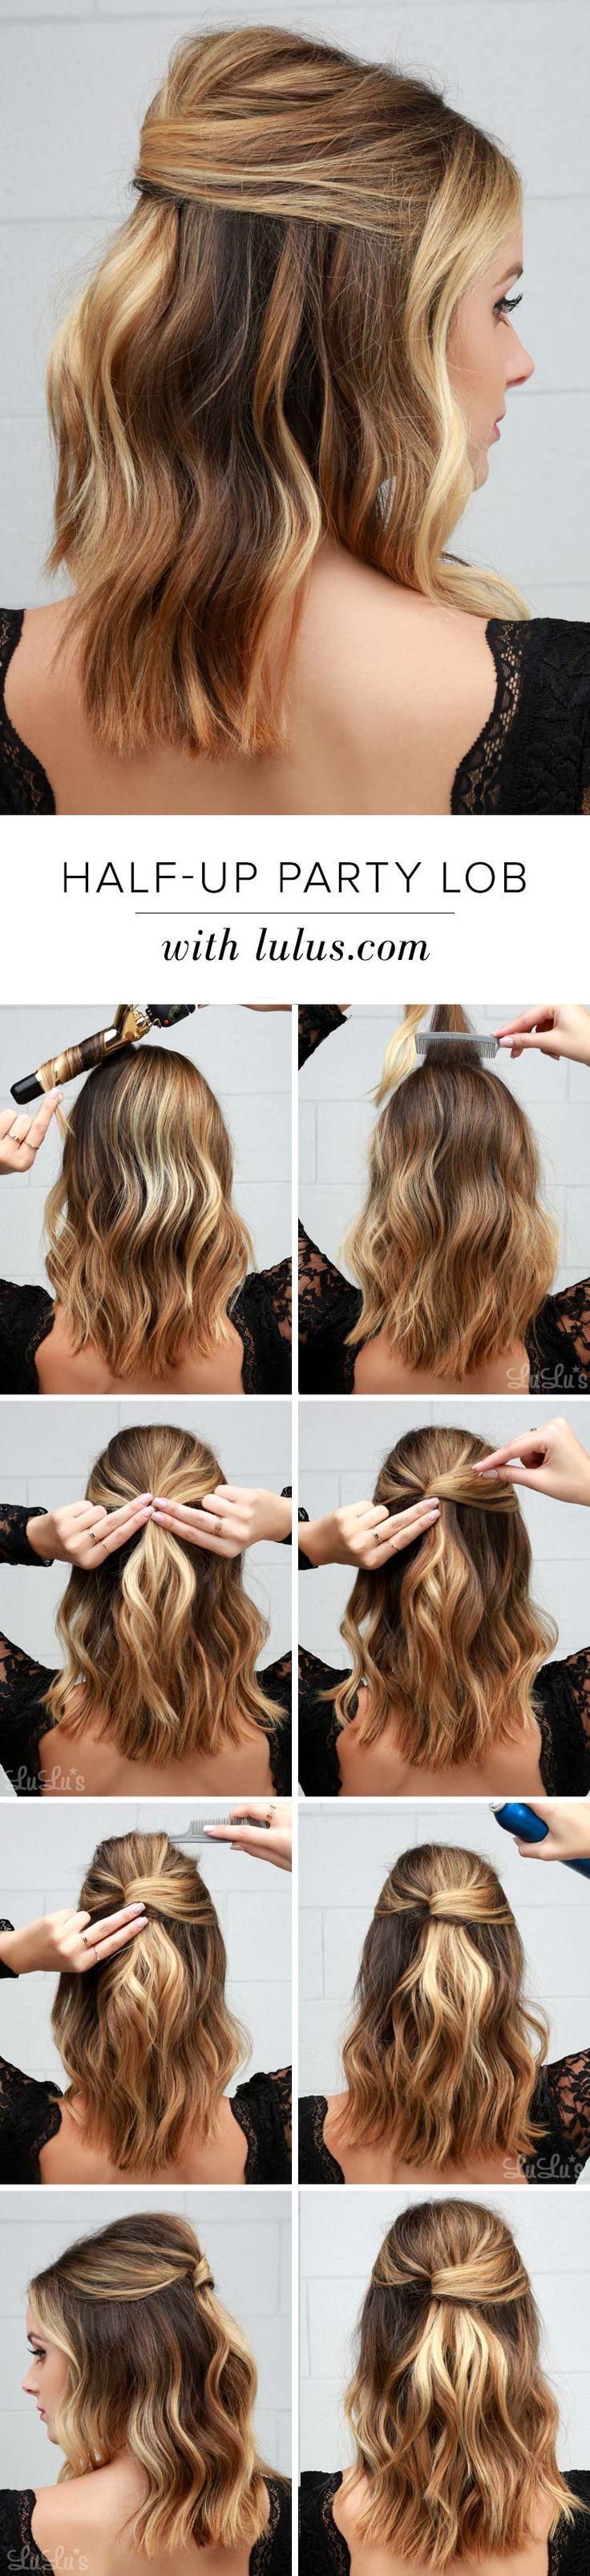 660 best Hairstyles images on Pinterest